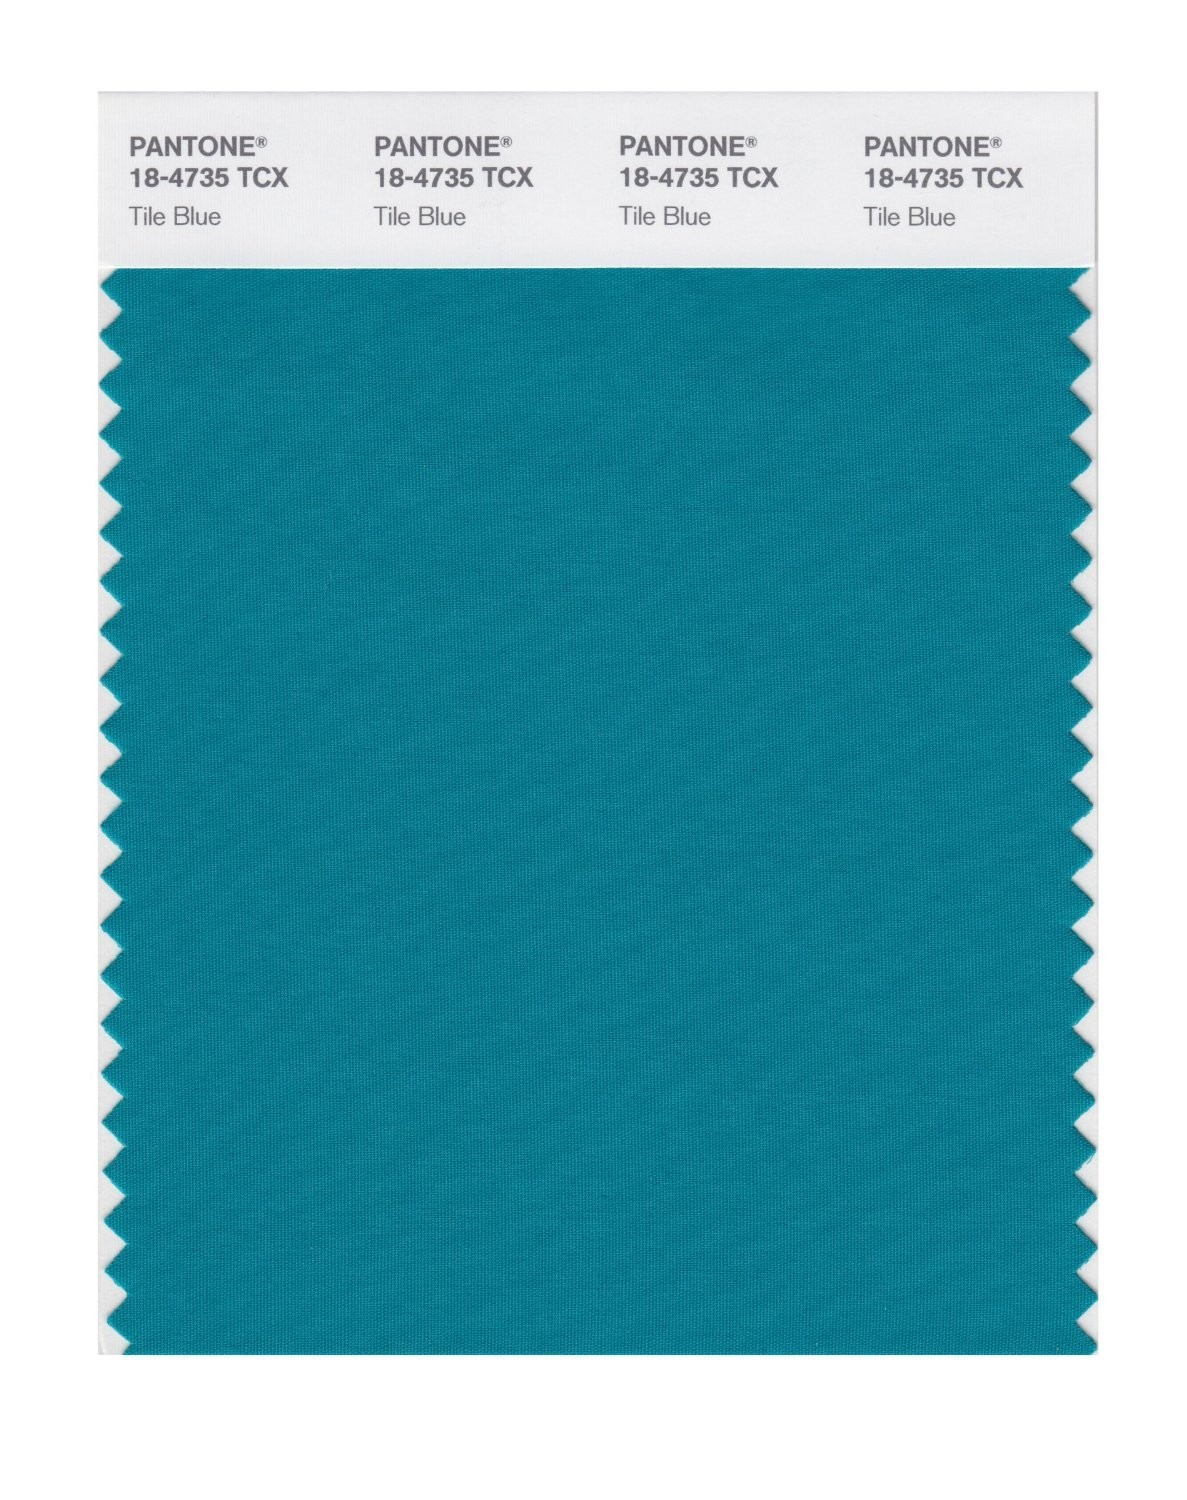 Pantone 18-4735 TCX Swatch Card Tile Blue